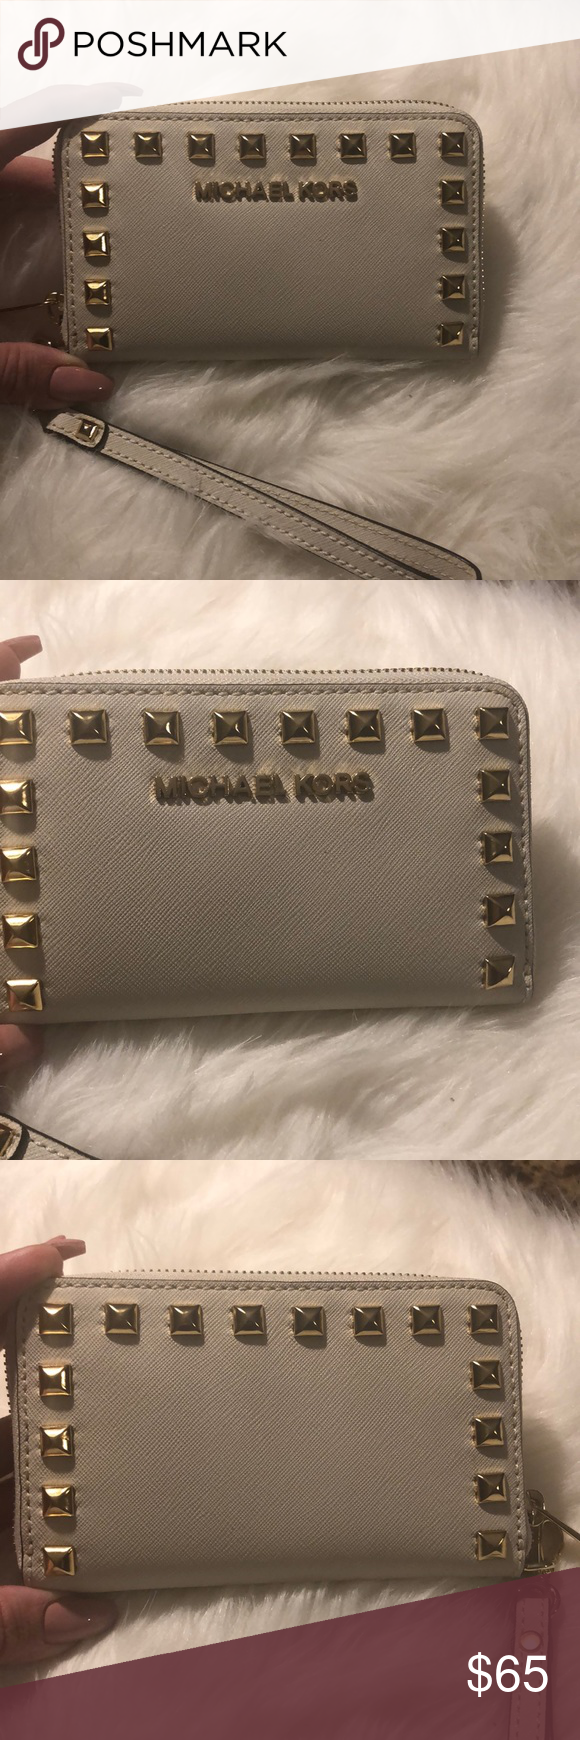 54d0f2e36c00 ... mk purse ef676 25820  australia sunday nite flash salemk studded wallet michael  kors studded wallet with detachable strap cream 3c301